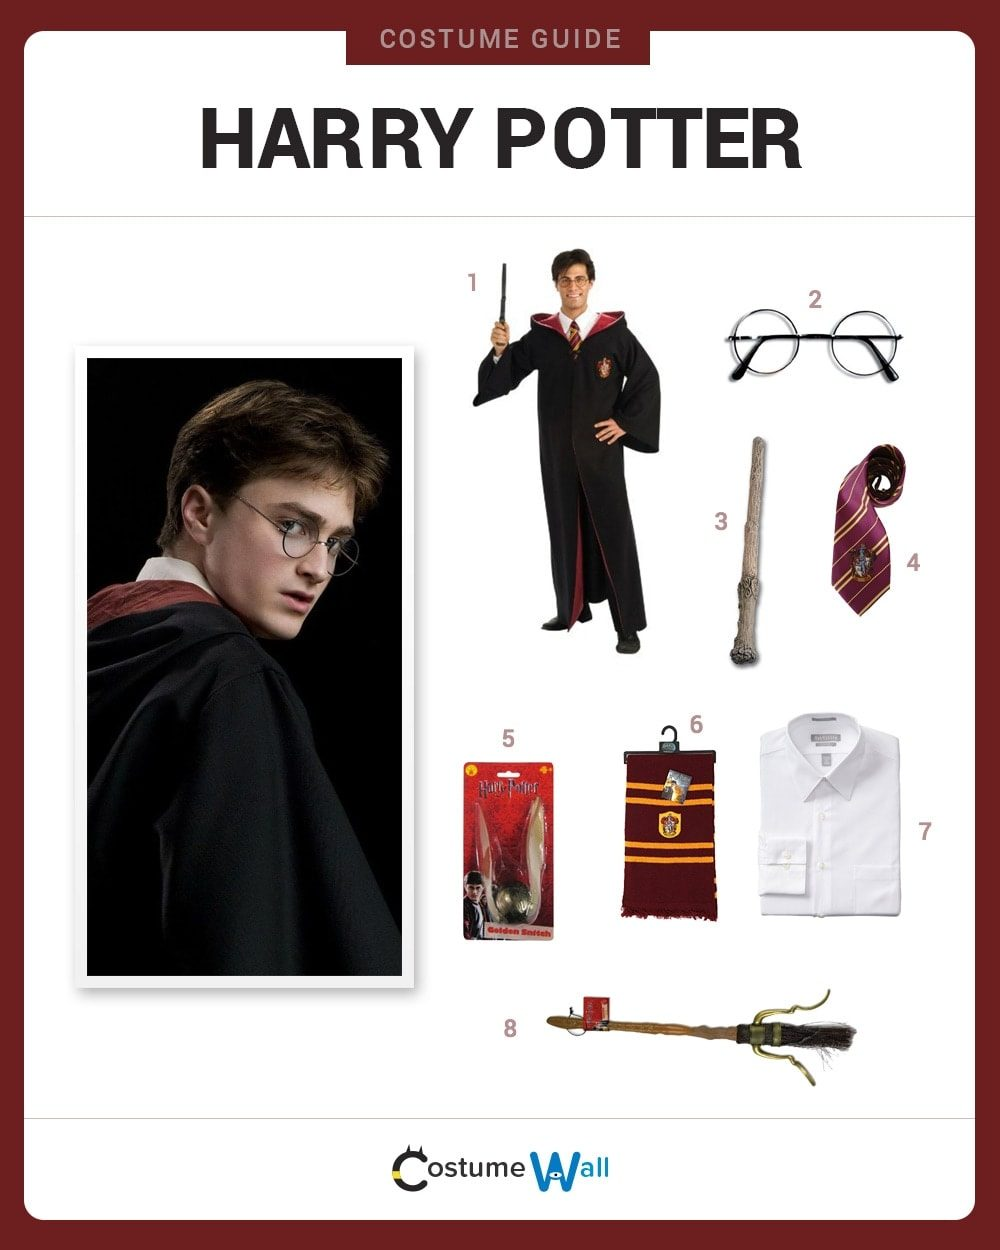 Harry Potter Costume Guide